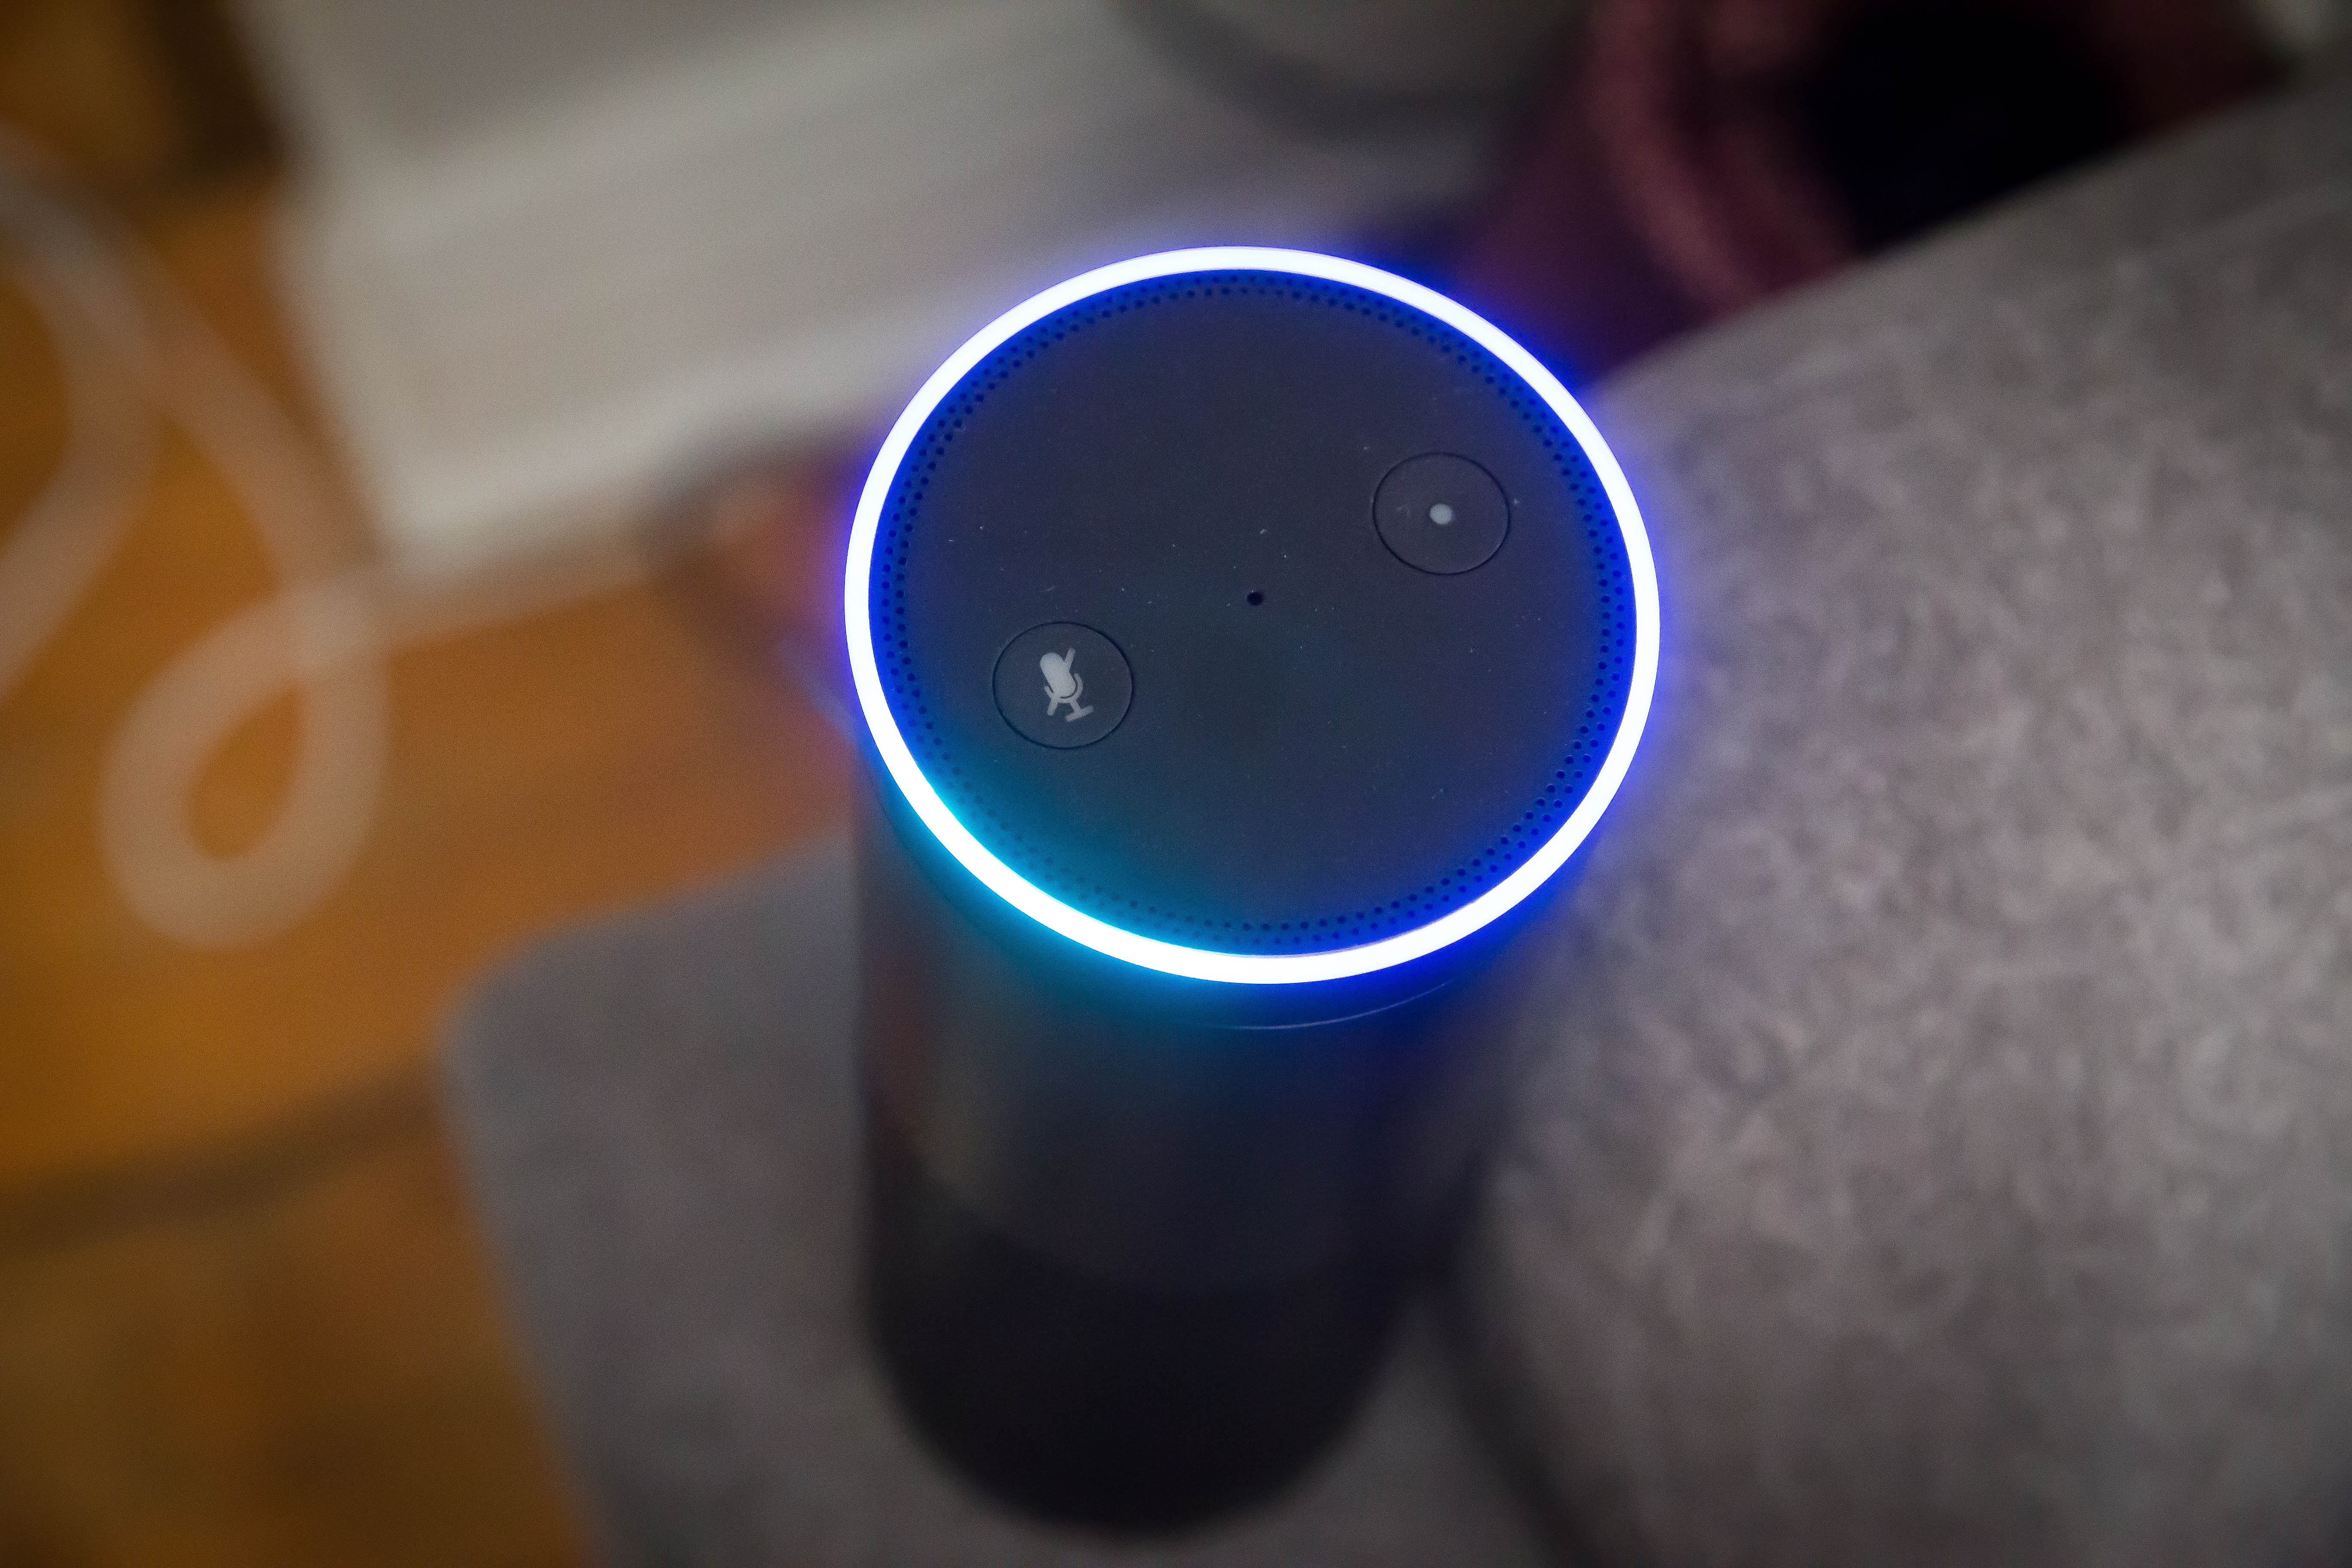 Judge orders Amazon to turn over Echo recordings in double